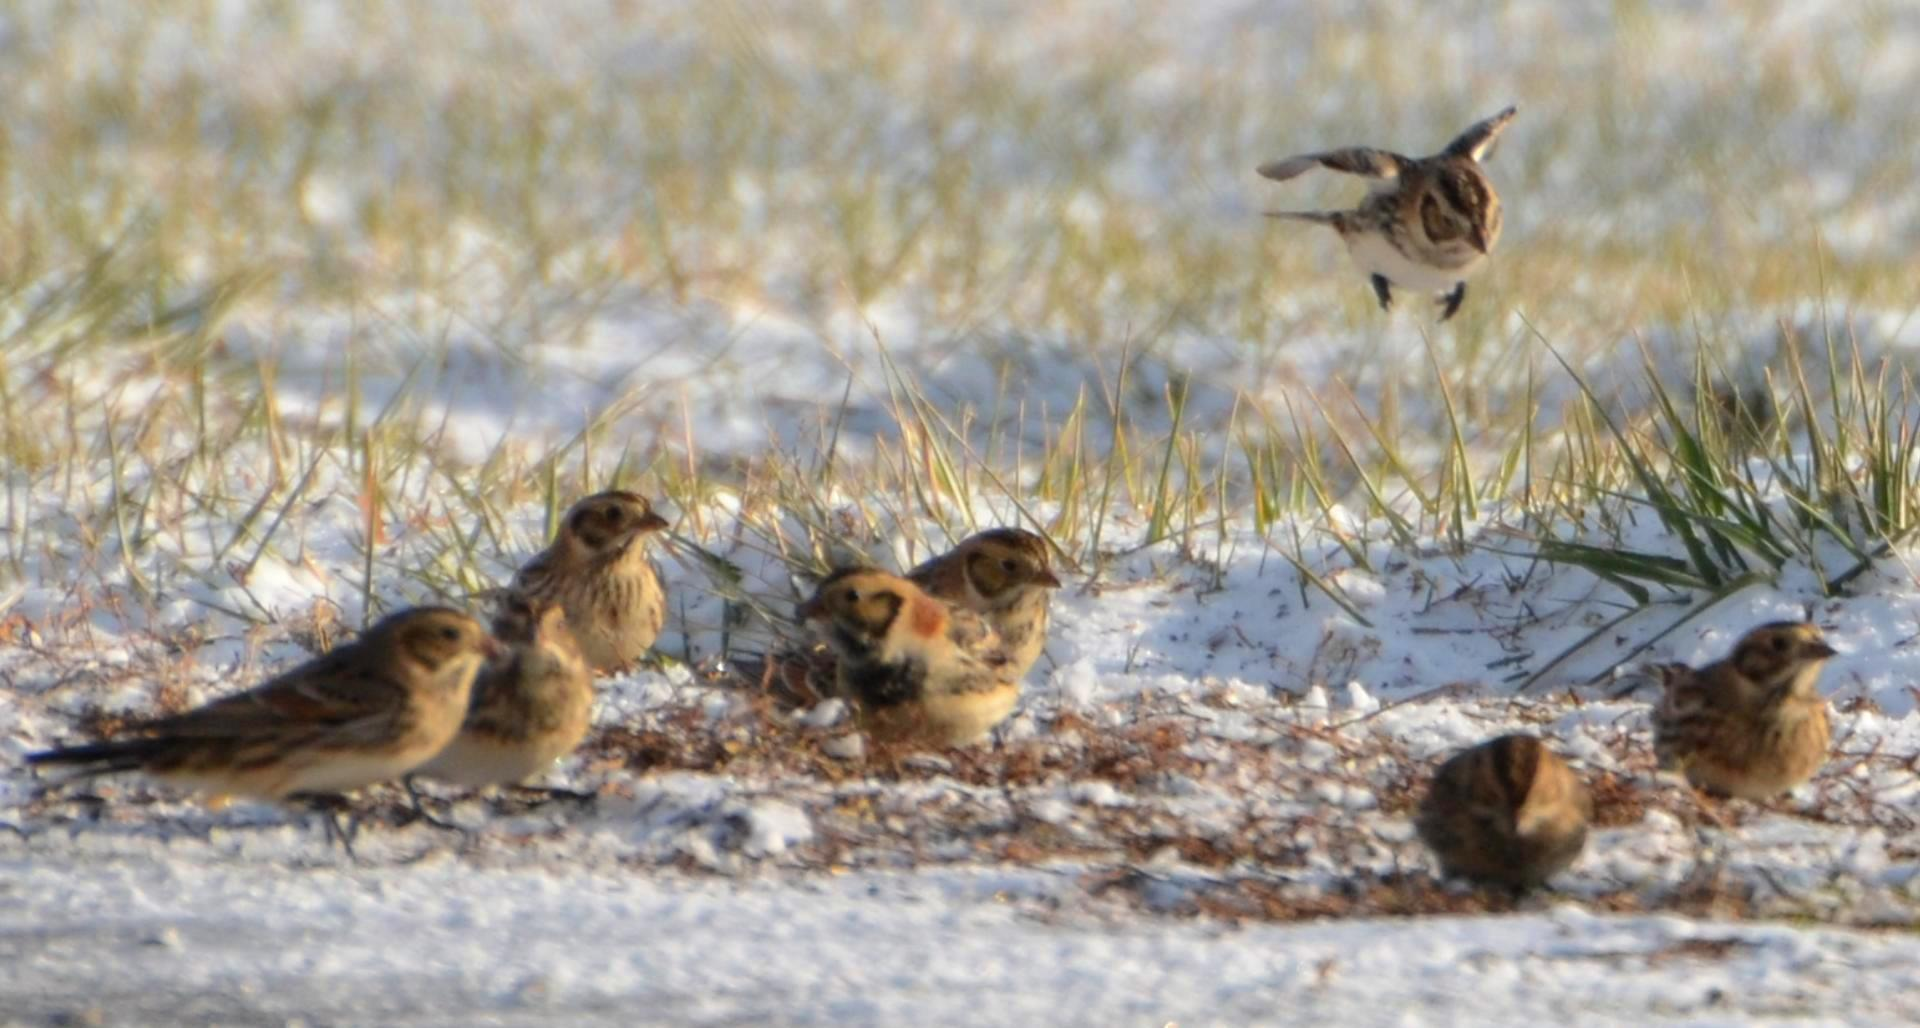 Migratory lapland longspurs endure the cold en route to their breeding grounds.